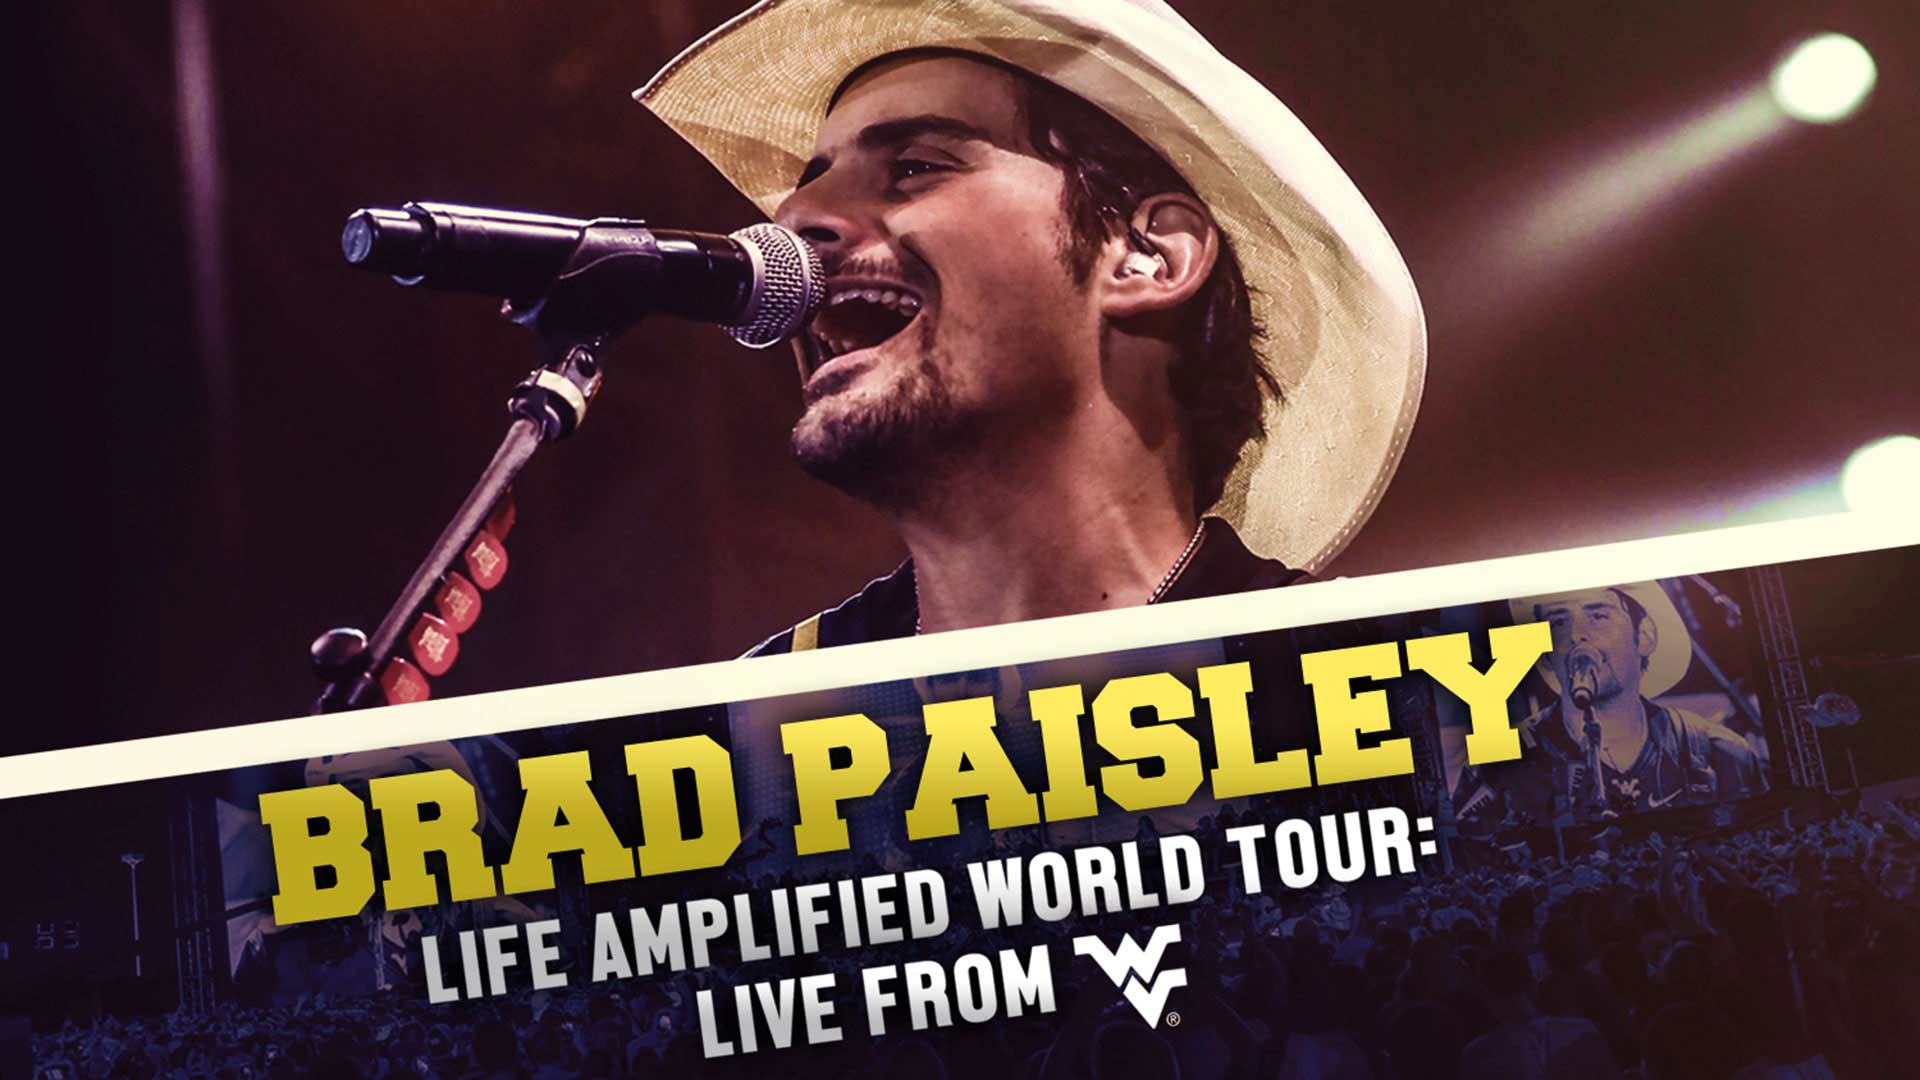 Brad Paisley: Life Amplified World Tour Live From WVU